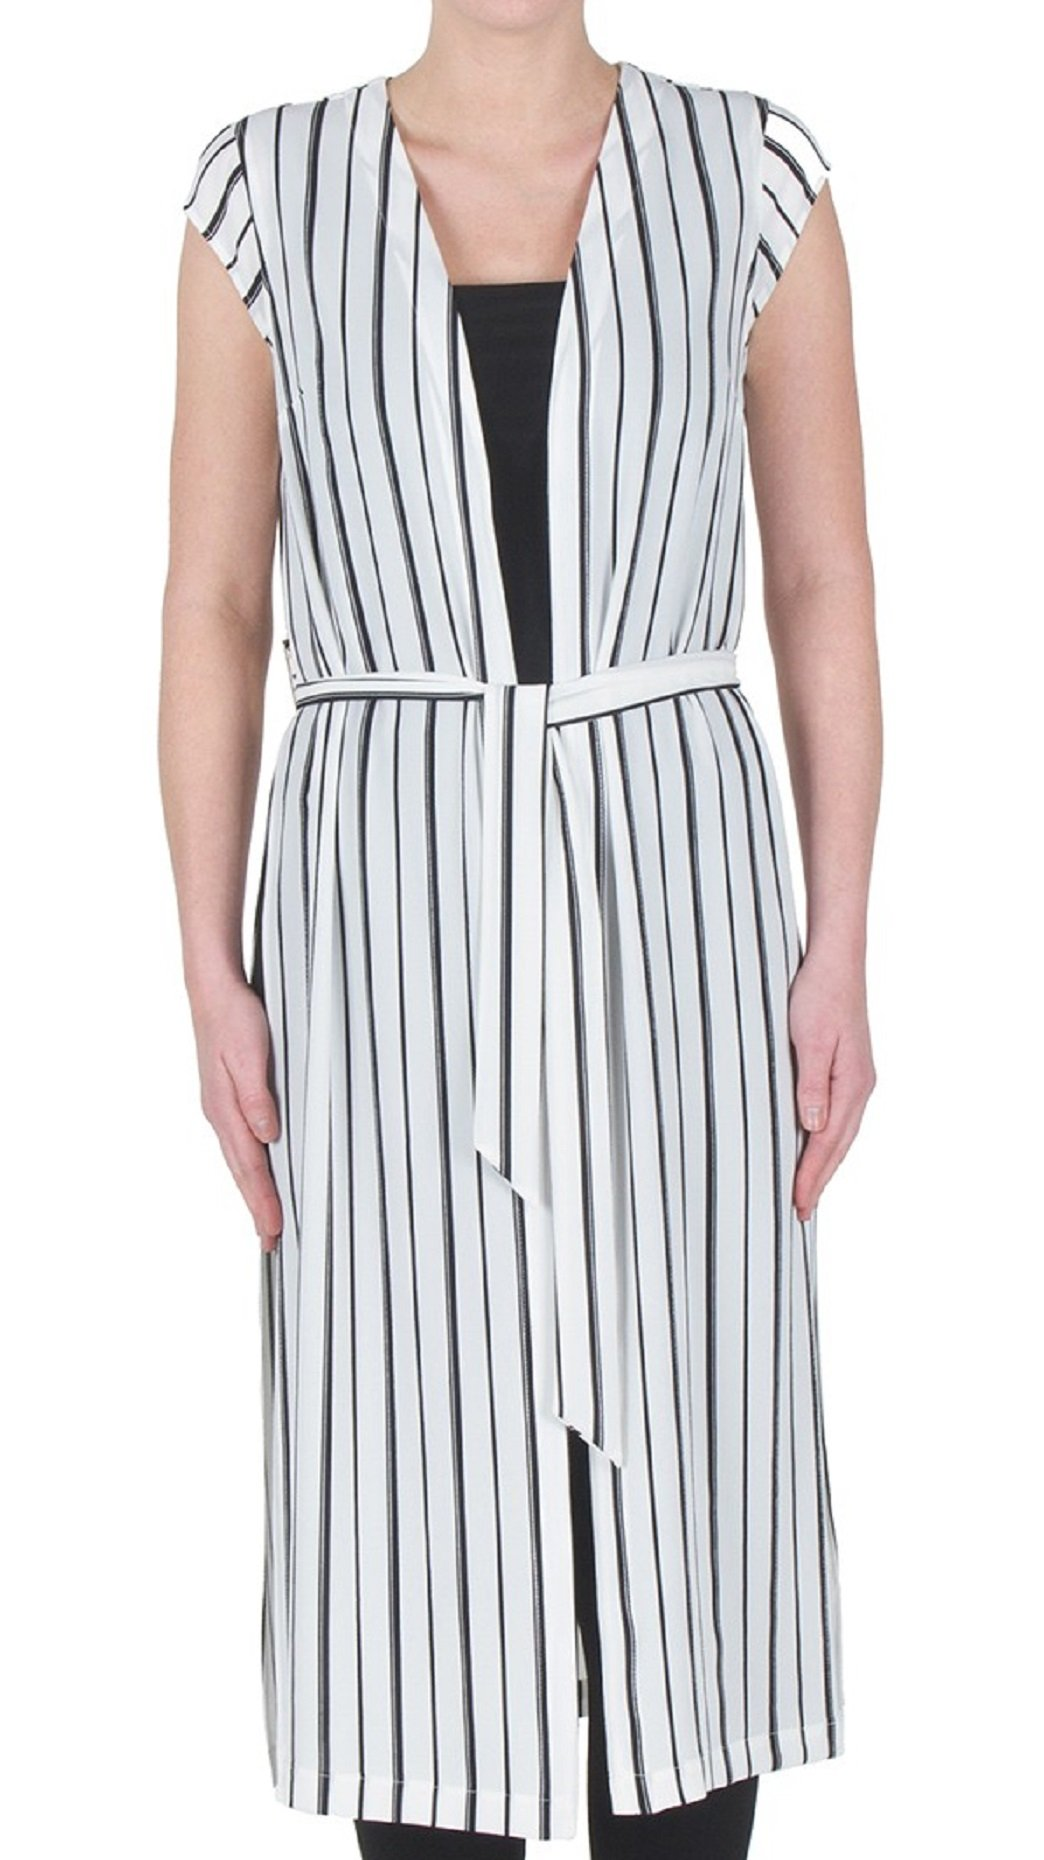 Joseph Ribkoff Cap Sleeve Belted and Striped Cover-Up Vest Style 172922 Size 4 by Joseph Ribkoff